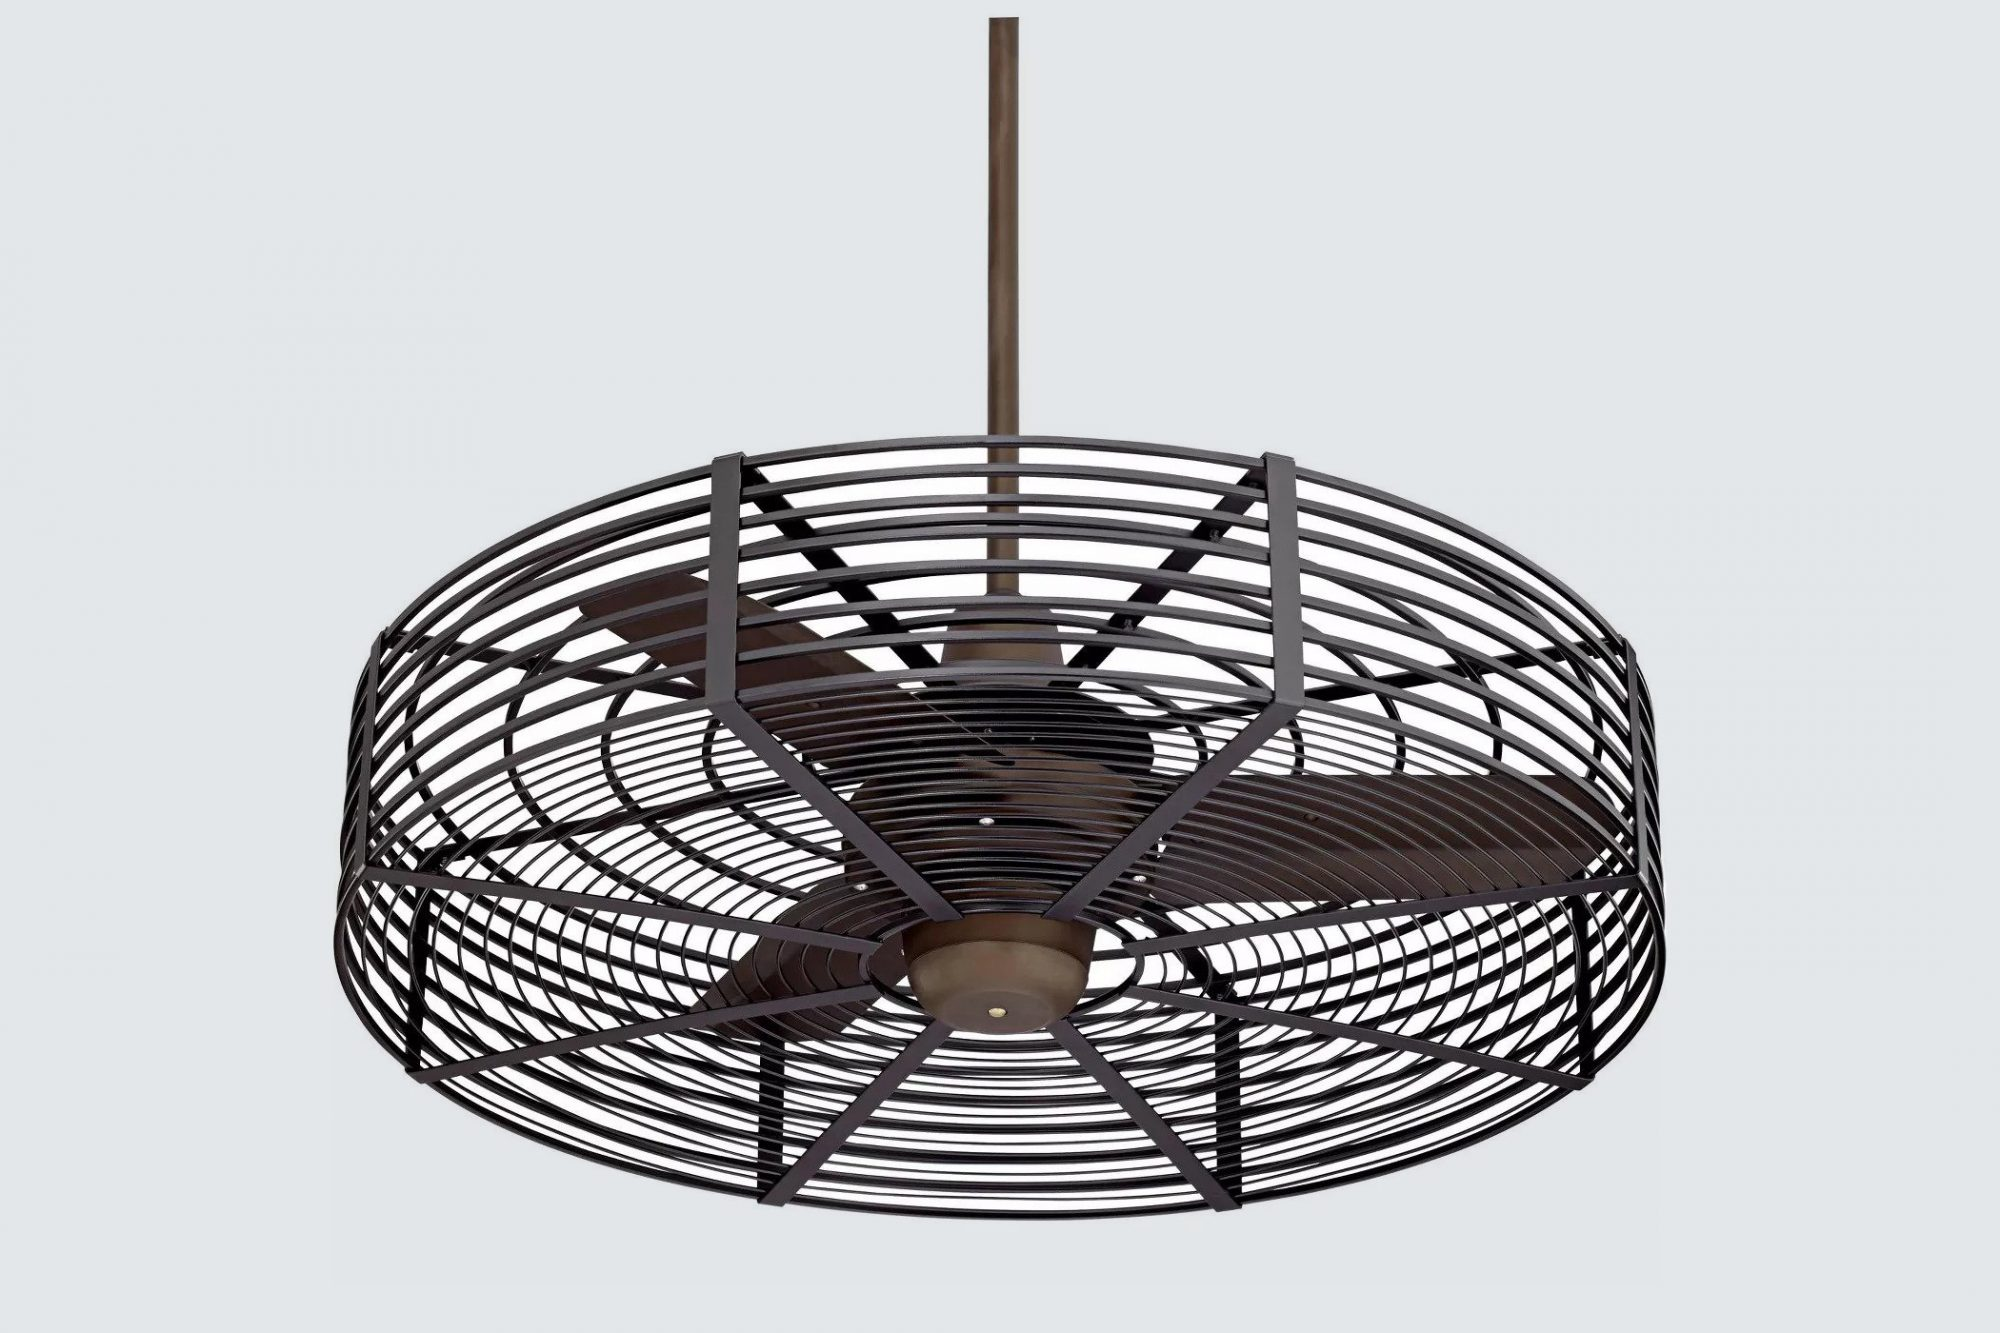 Casa Vieja Damp Rated Industrial Cage Outdoor Ceiling Fan